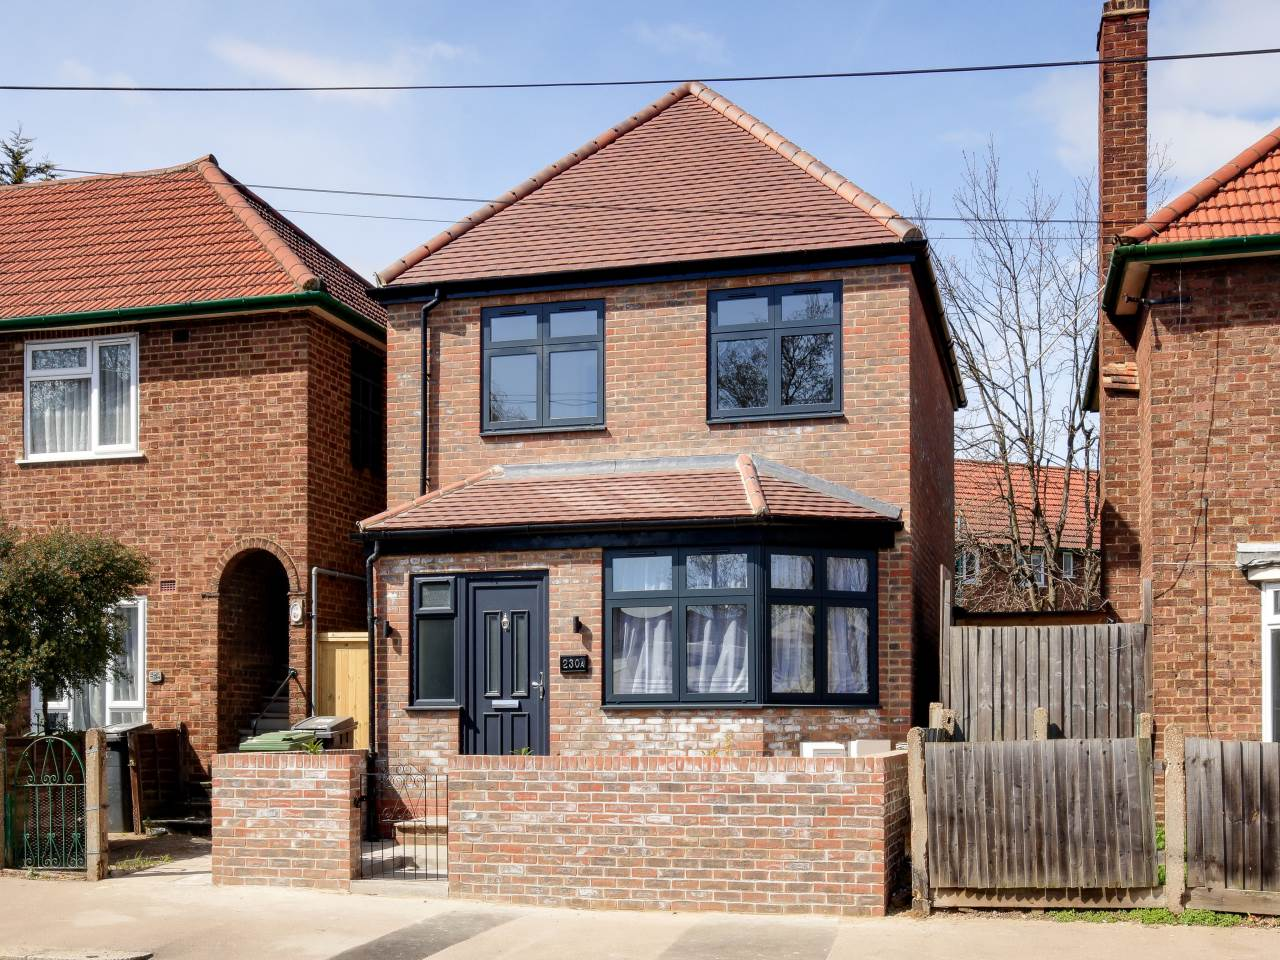 3 bed house for sale in Shernhall Street , Walthamstow  - Property Image 1